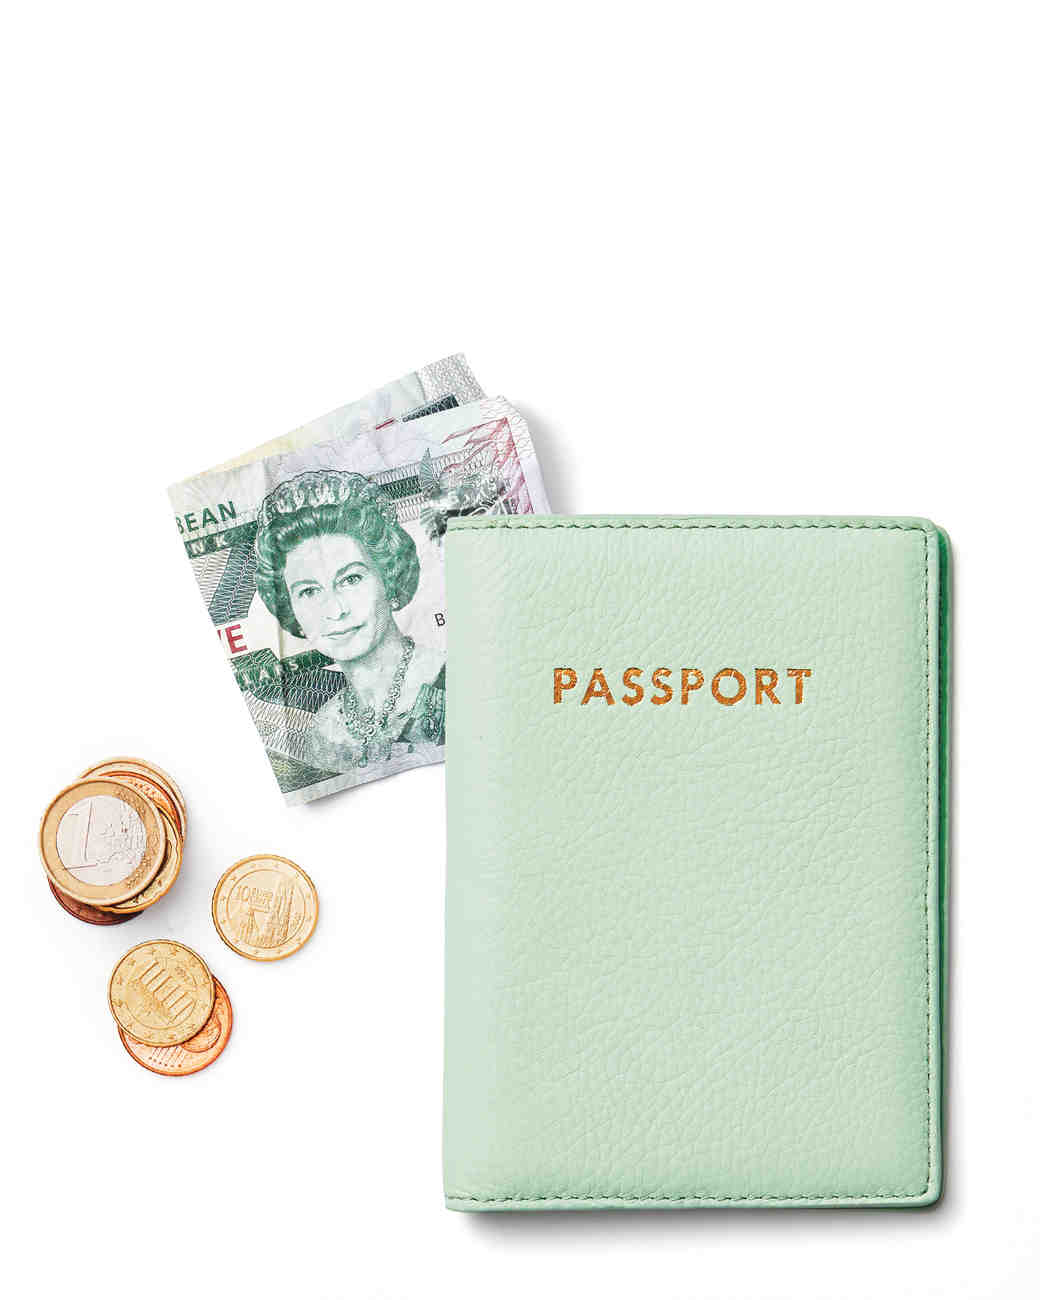 travel-passport-case-212comp-mwd110795.jpg